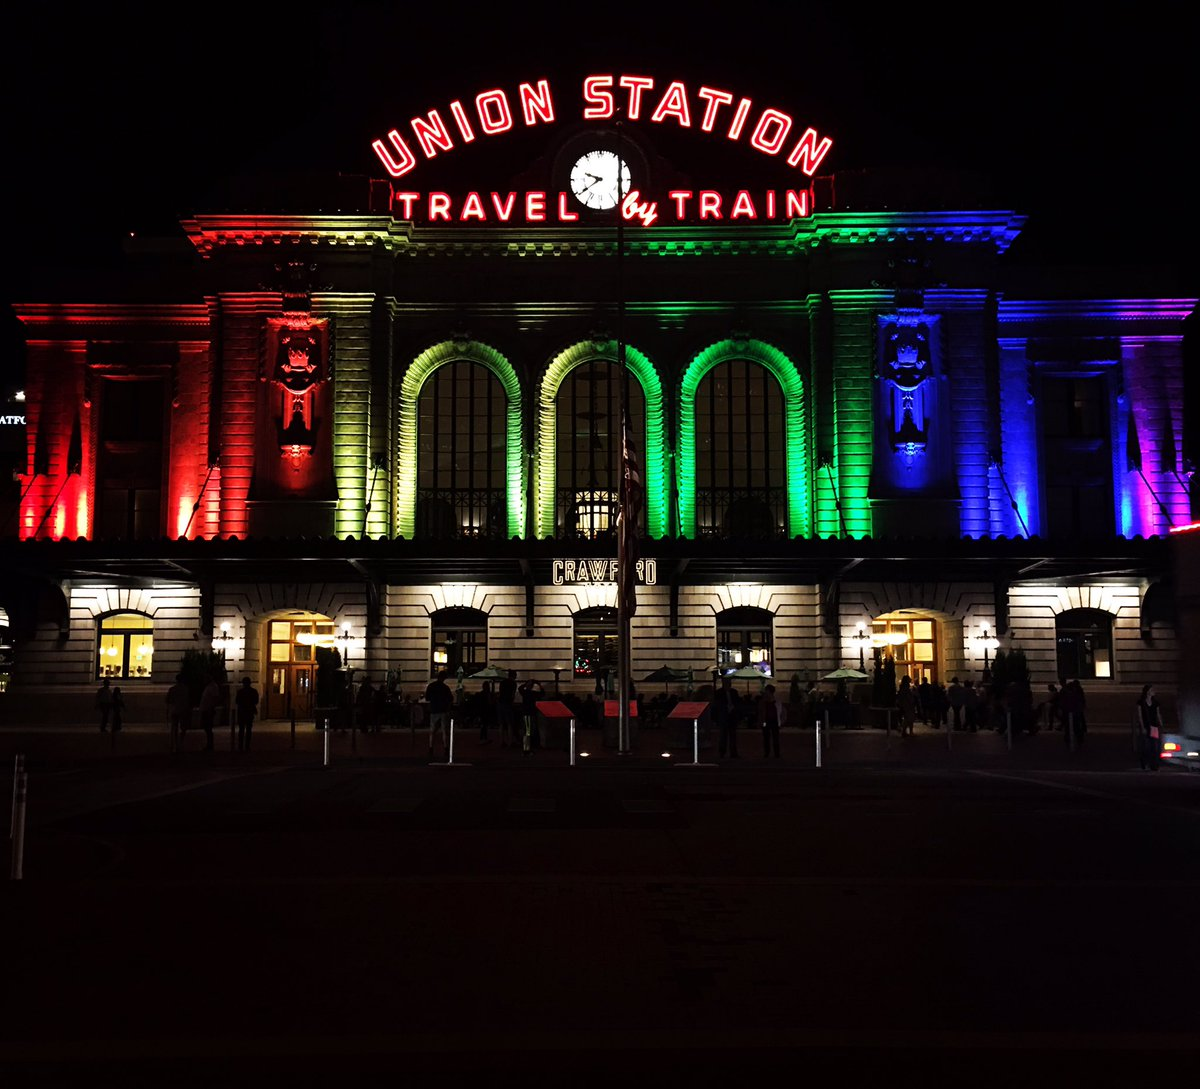 .@DenversStation lit up #rainbow for victims in #Orlando #WeAreOrlando #LGBTQ #Latinx #Pride #Denver #OneLove https://t.co/zUKxvNP934